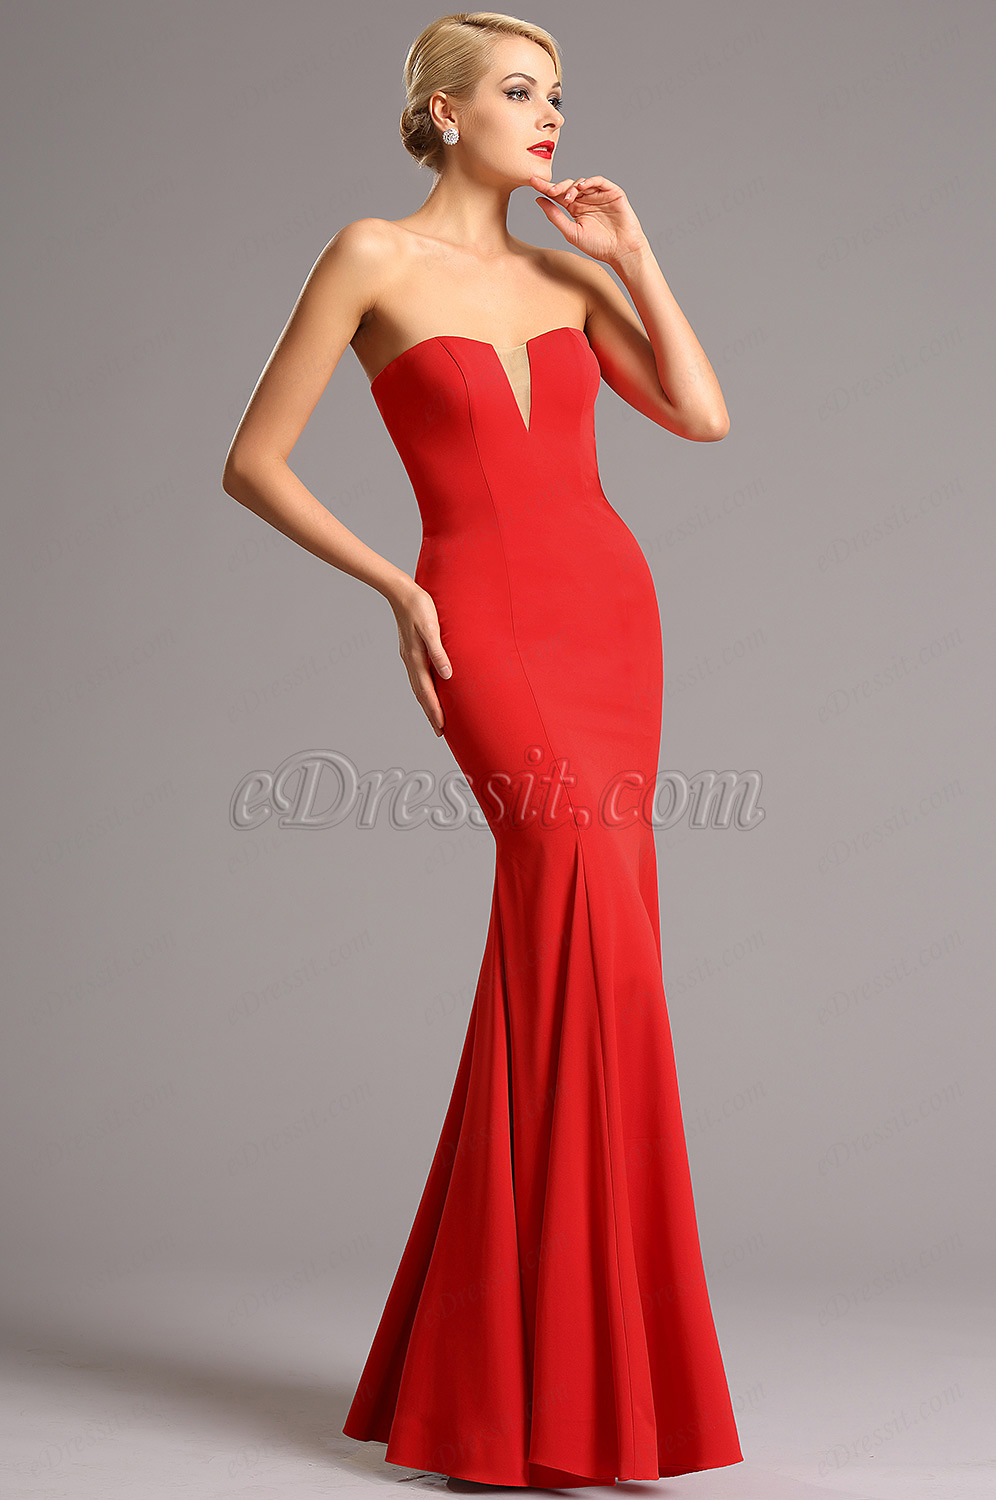 Romantic Red Valentines Dresses for You - eDressit.com